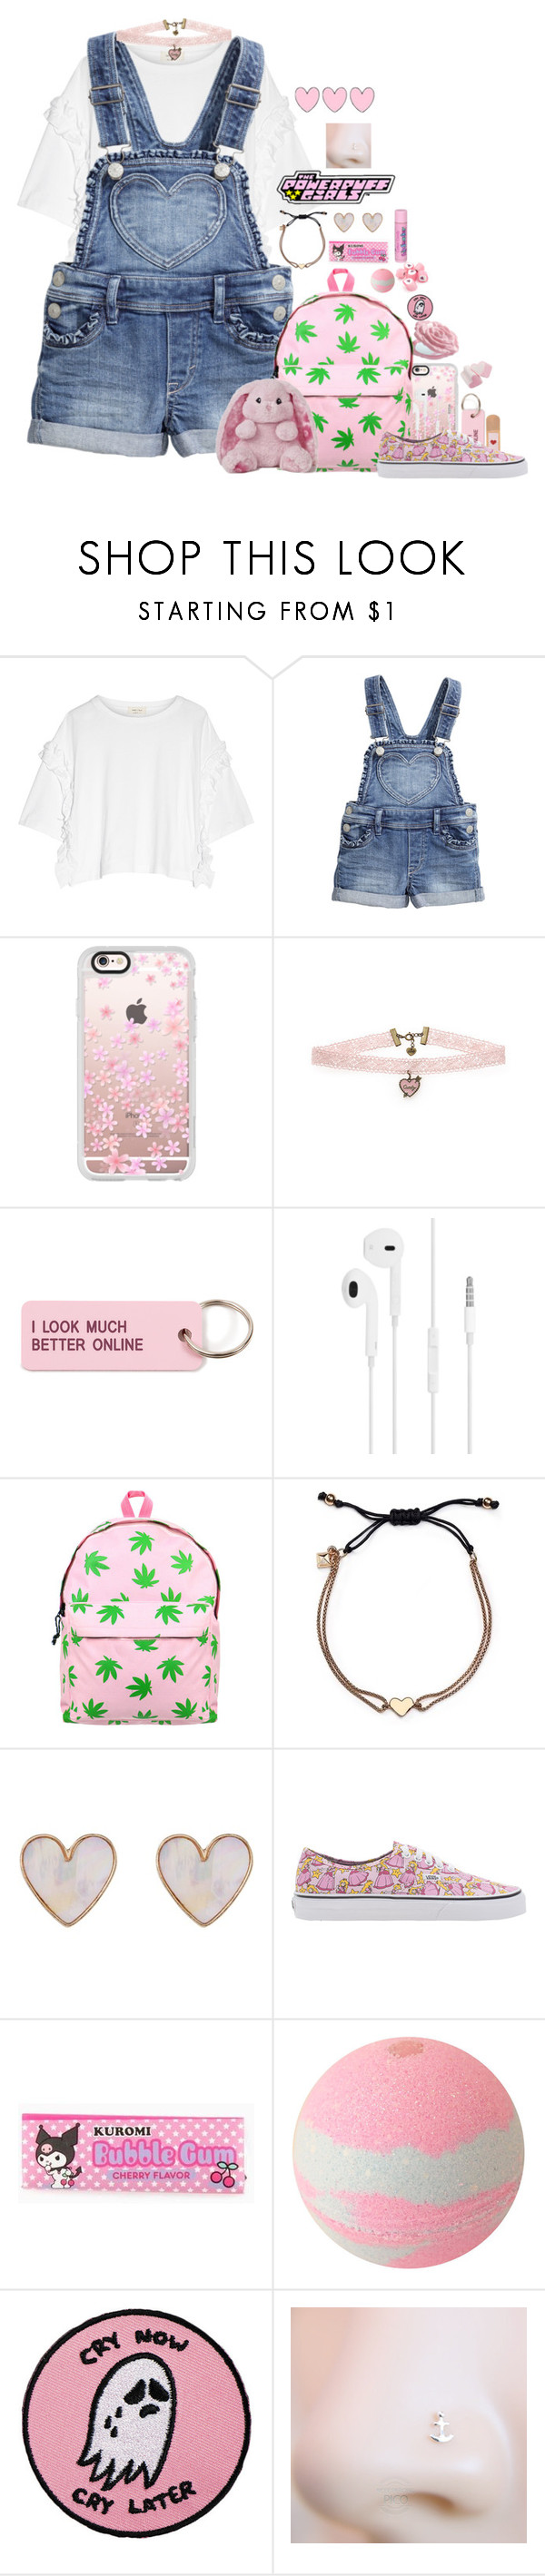 """""""Untitled #33"""" by xpenguinmeldoiesx ❤ liked on Polyvore featuring Steve J & Yoni P, Casetify, Various Projects, Retrò, Rebecca Minkoff, New Look, Vans and Cotton Candy"""